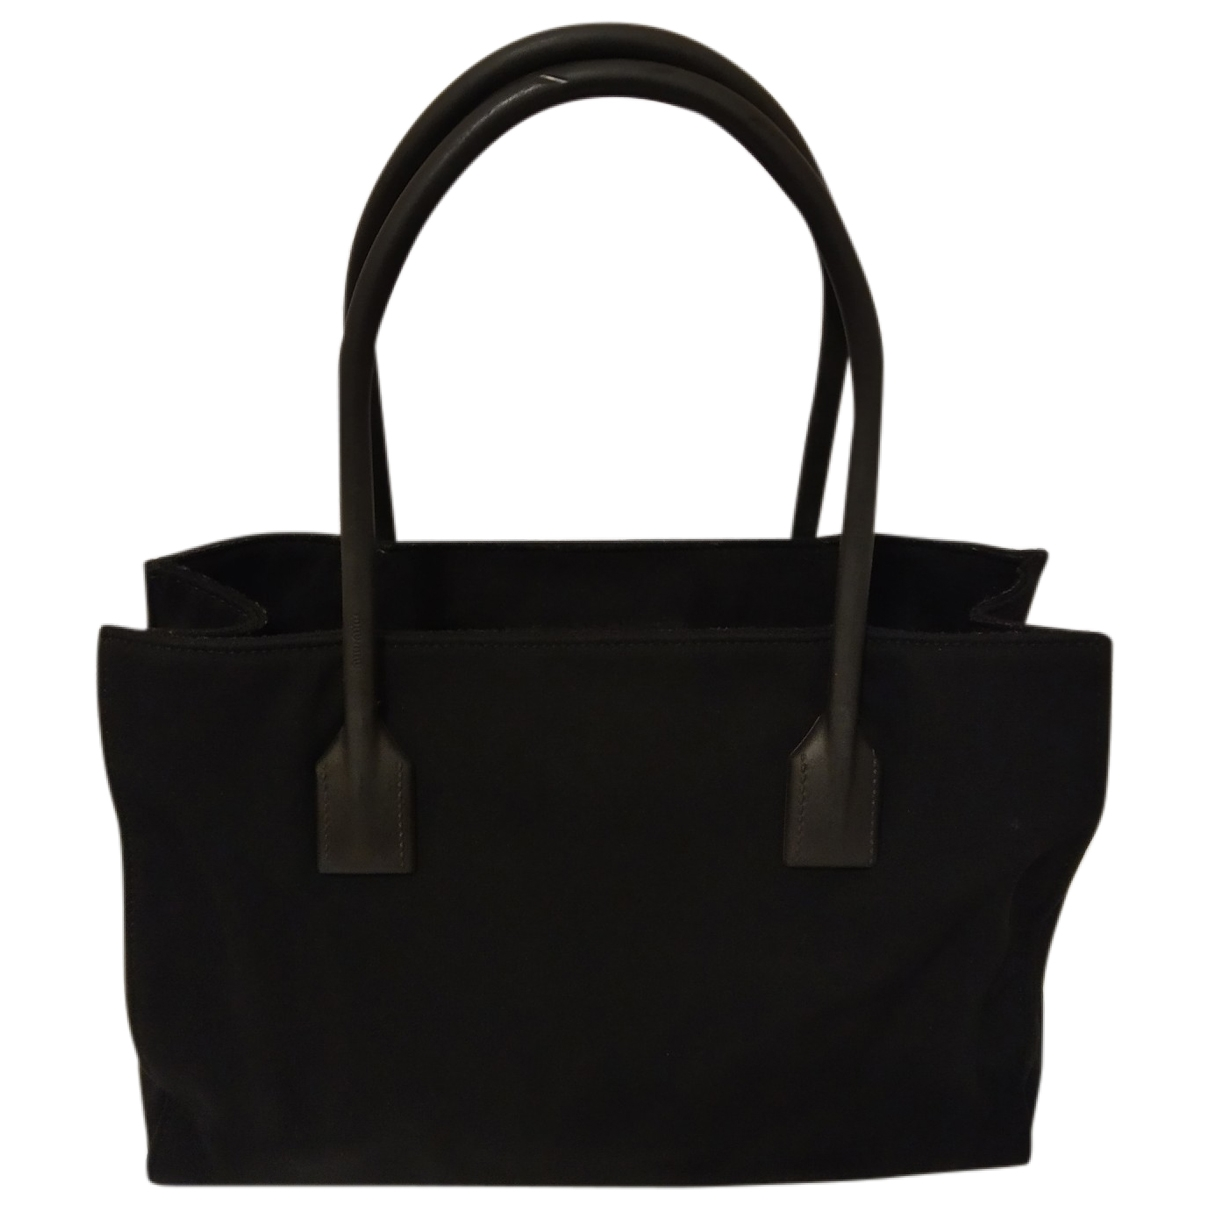 Miu Miu \N Black Cloth handbag for Women \N